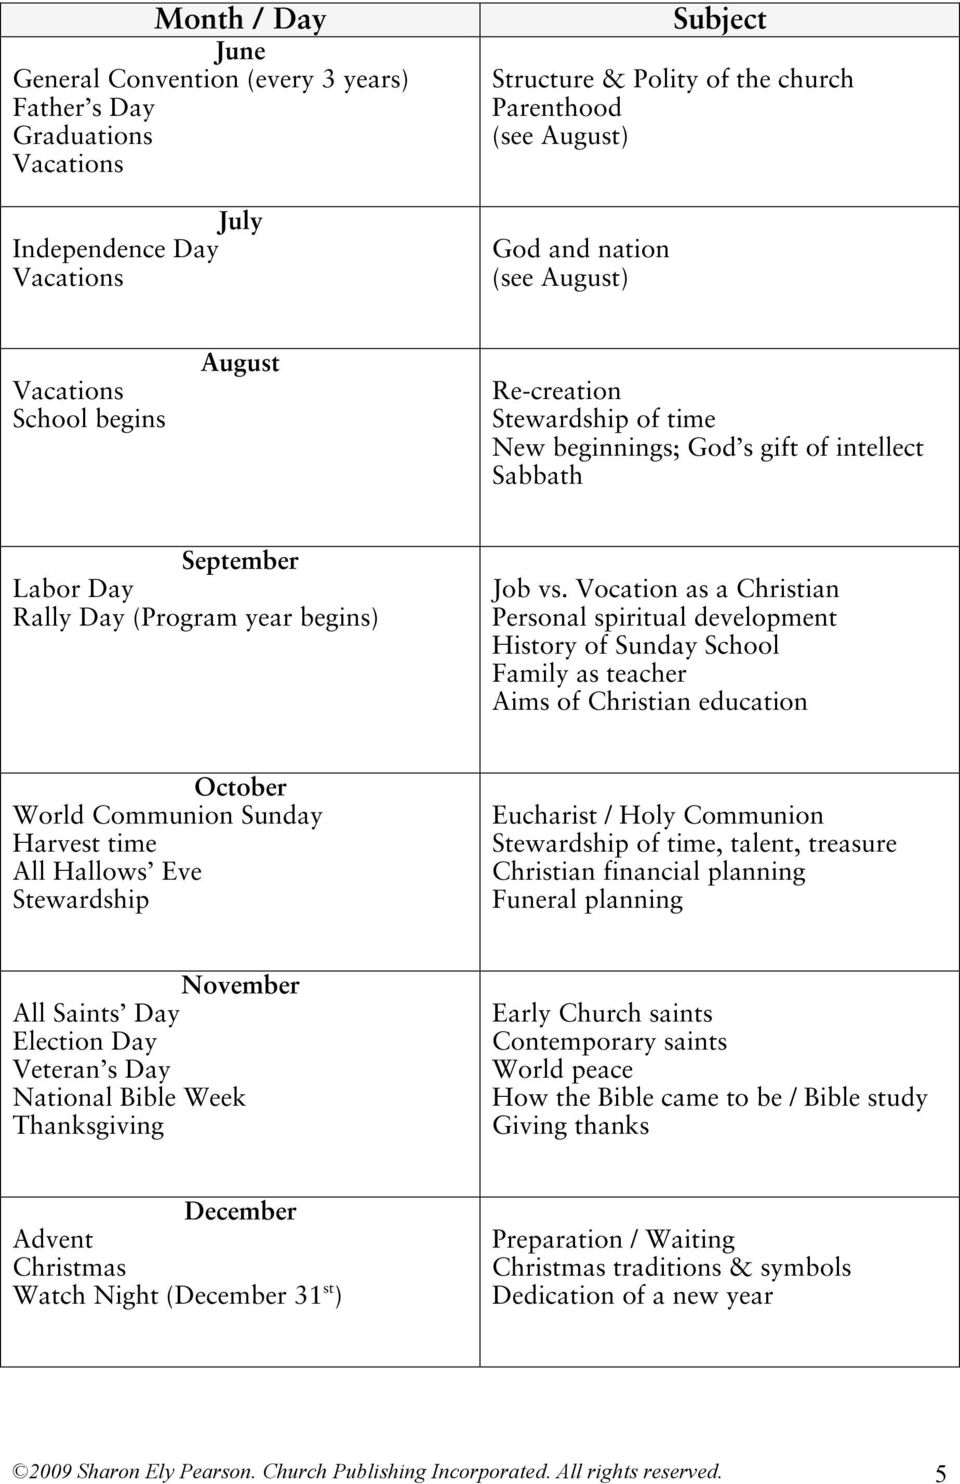 Vocation as a Christian Personal spiritual development History of Sunday School Family as teacher Aims of Christian education October World Communion Sunday Harvest time All Hallows Eve Stewardship